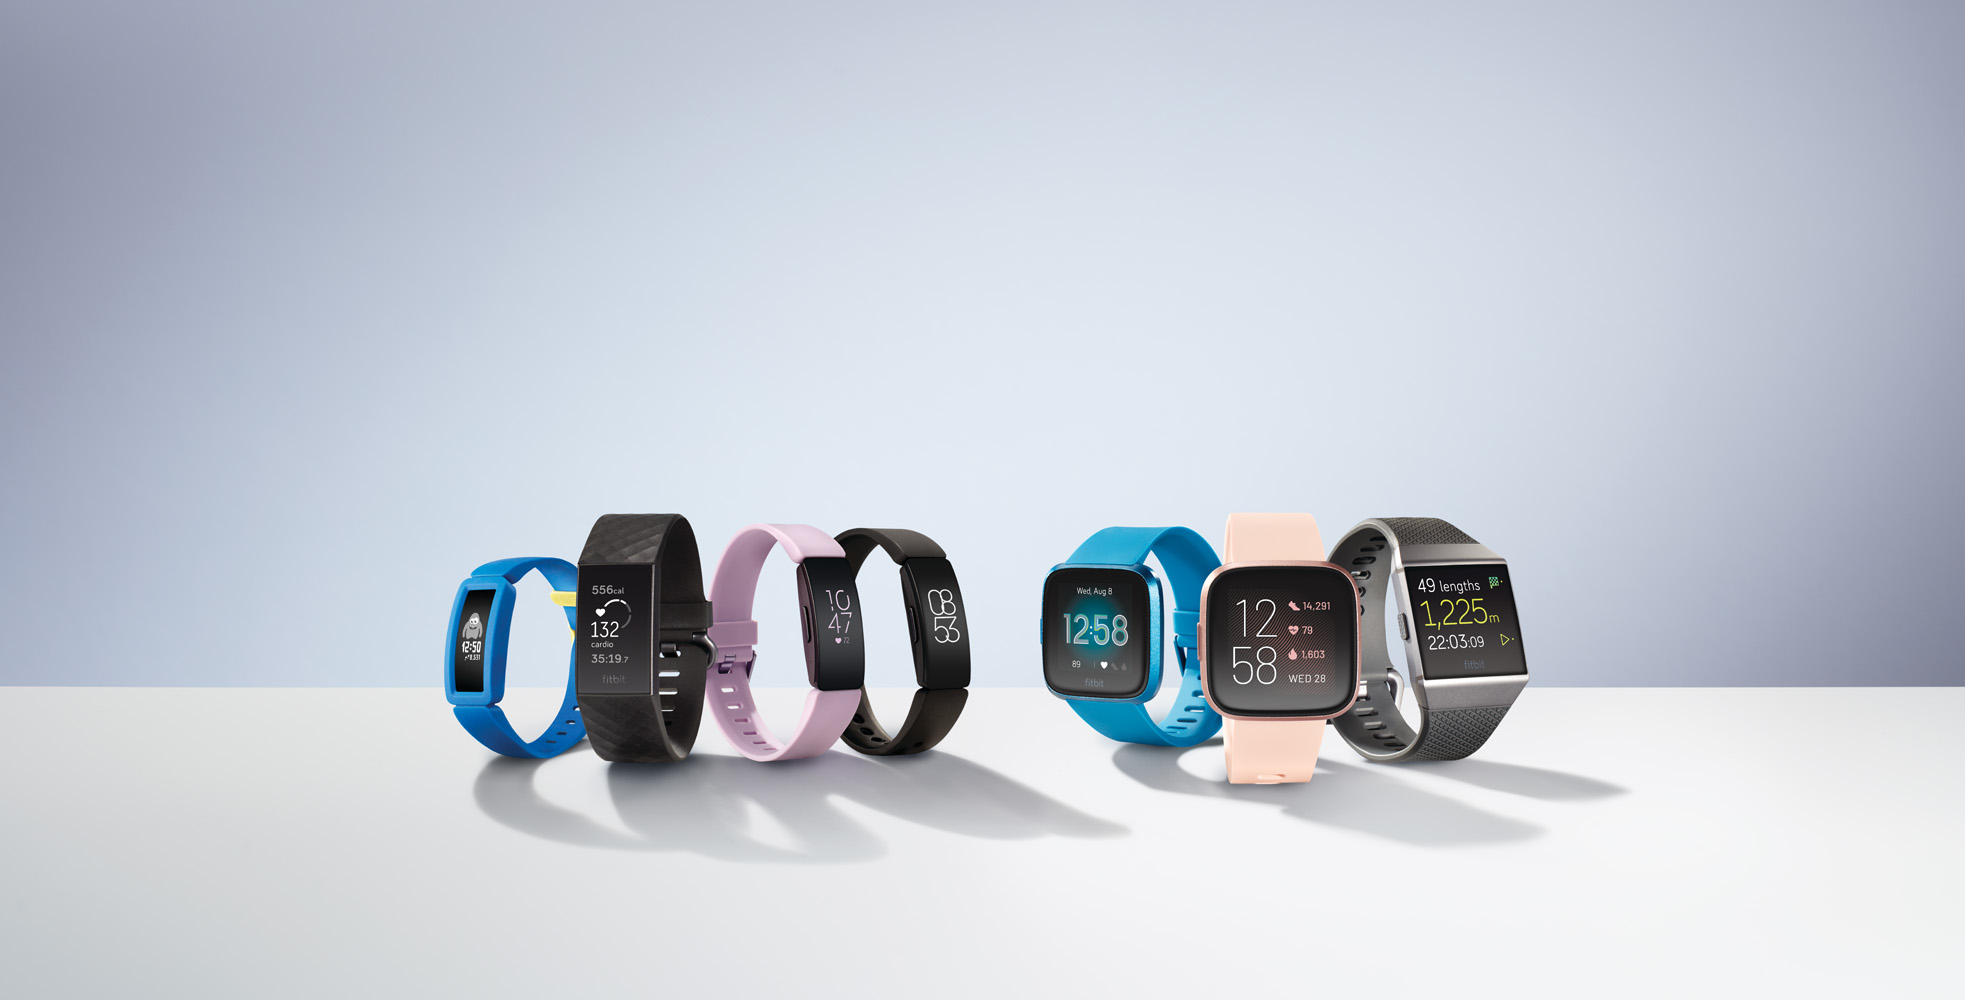 Google's Fitbit acquisition will reportedly be scrutinized by the Justice Department